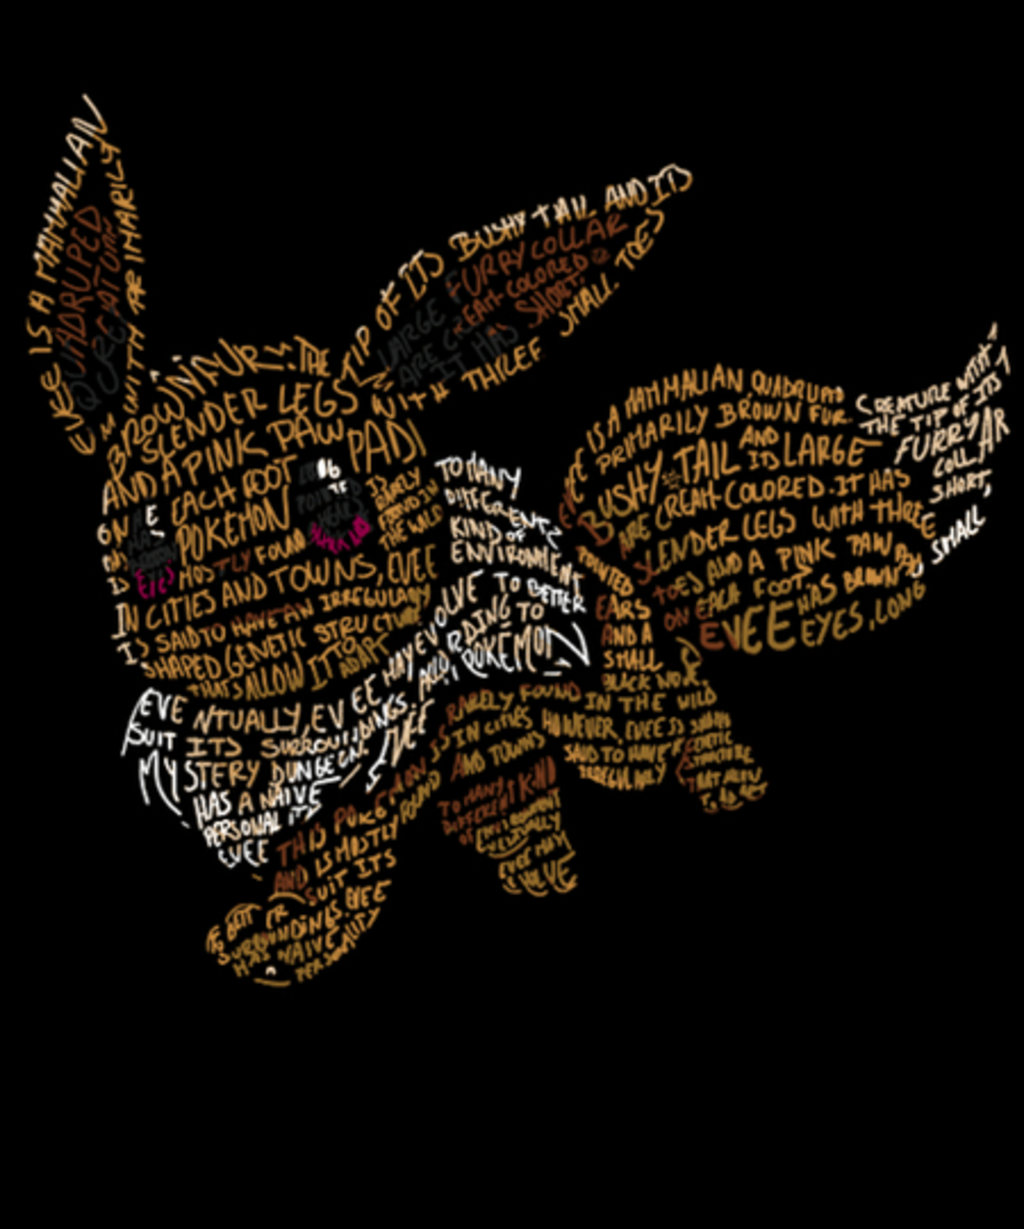 Qwertee: Eevee's words